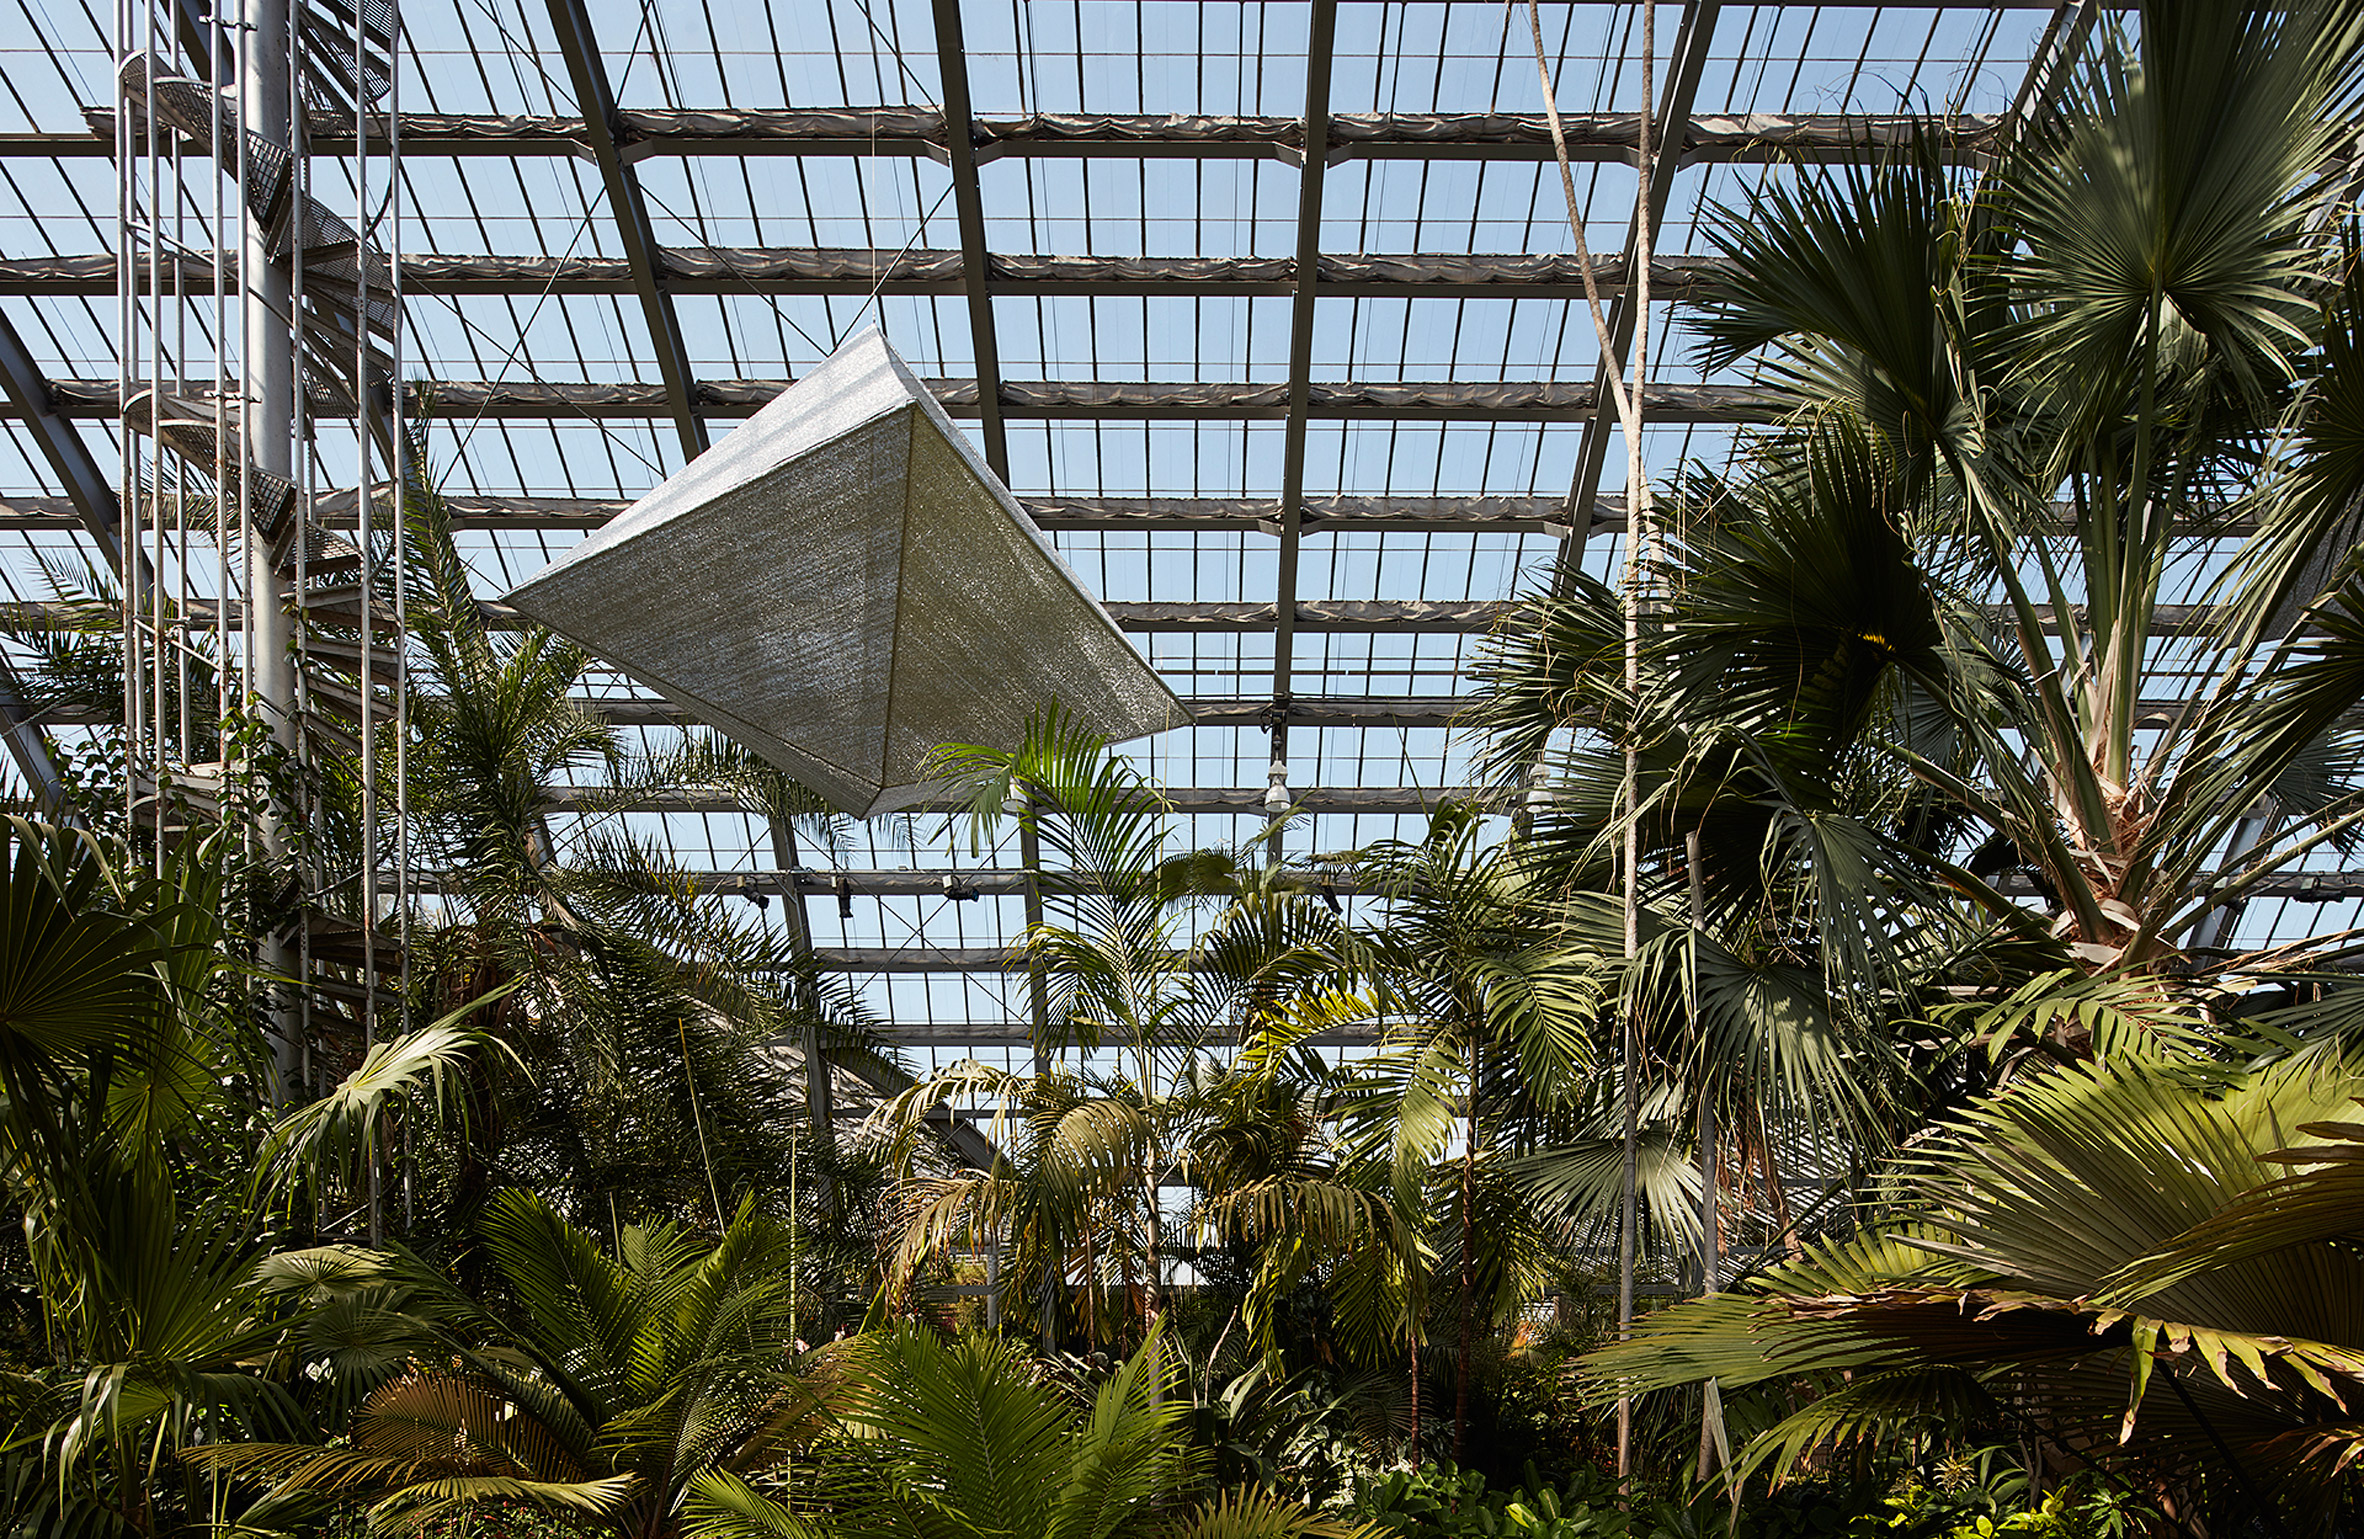 Francois Perrin installs cooling Air Houses in Chicago conservatory